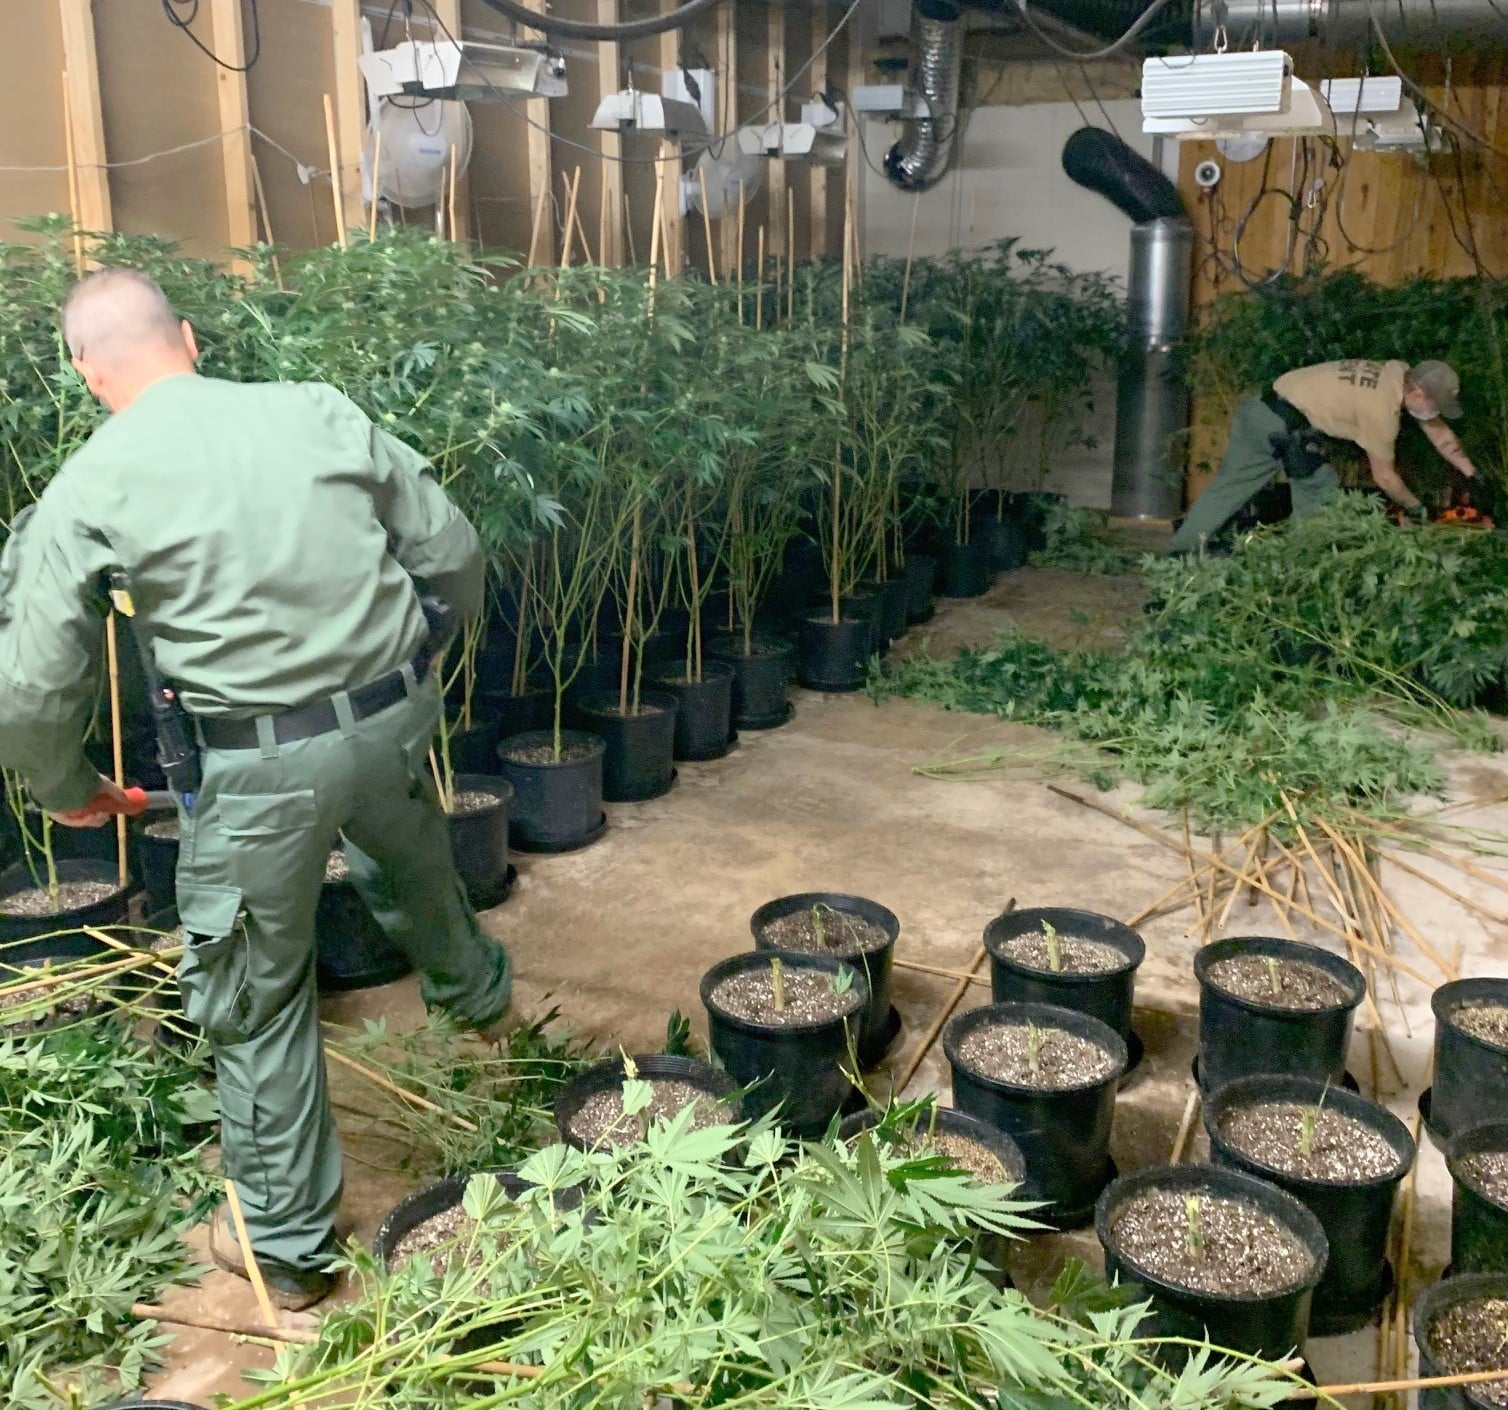 Logan County illegal grow operation